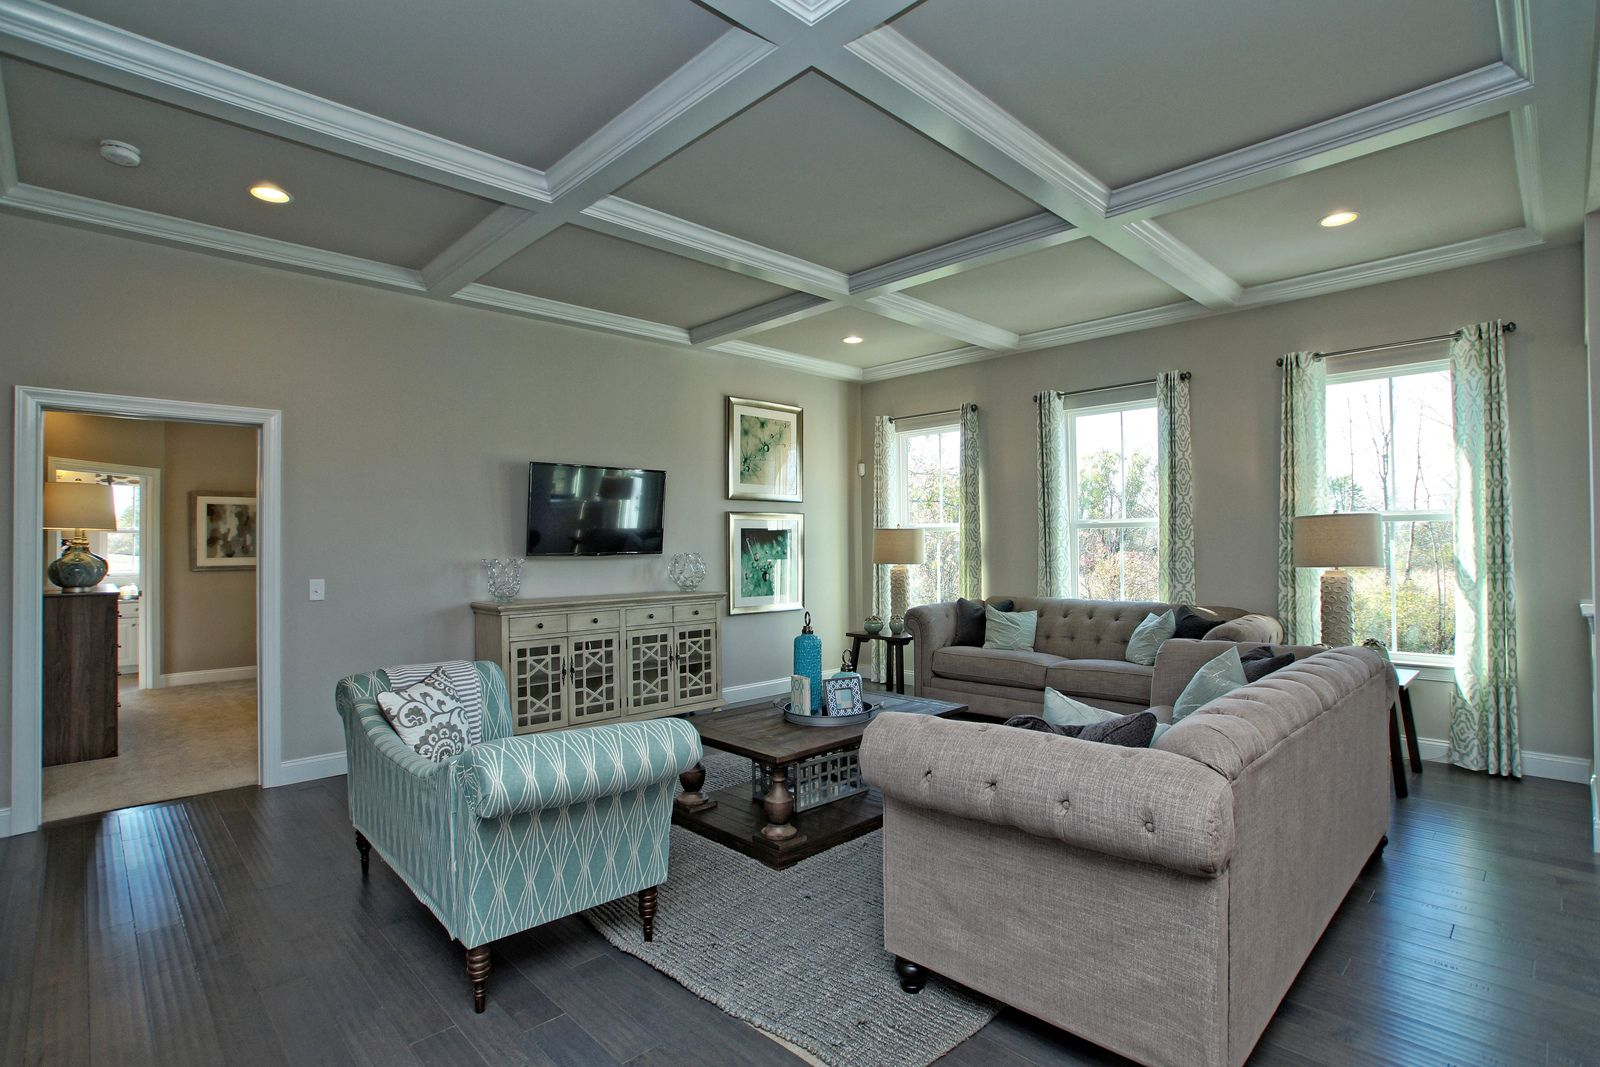 Living Area featured in the Esquire Place By Ryan Homes in Sussex, DE